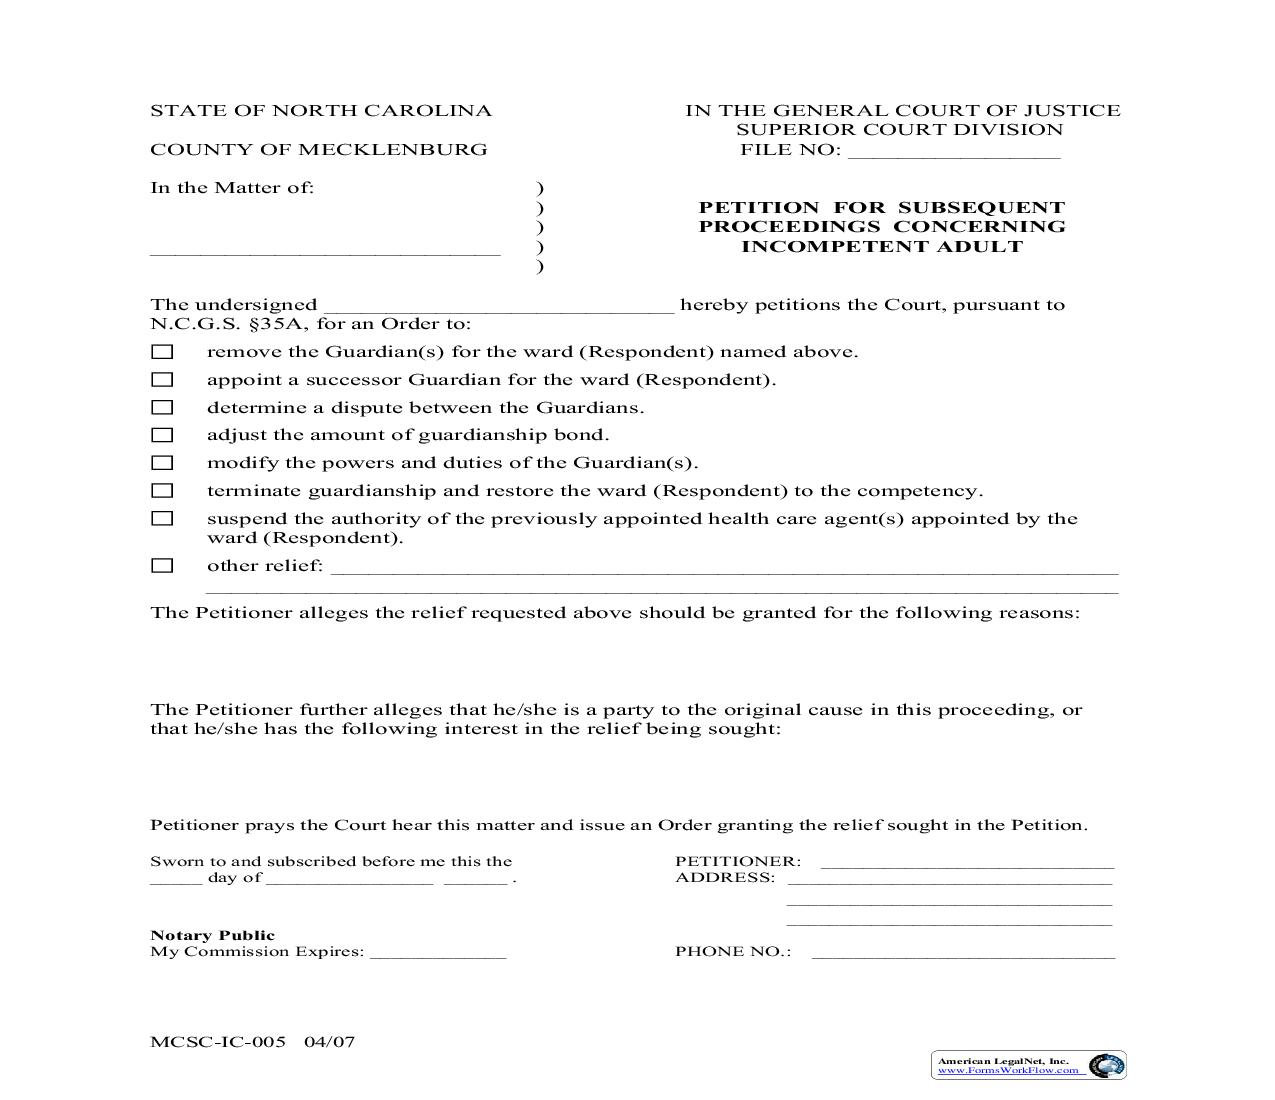 Petition For Subsequent Proceedings Concerning Incompetent Adult {MCSC-IC-005}   Pdf Fpdf Doc Docx   North Carolina